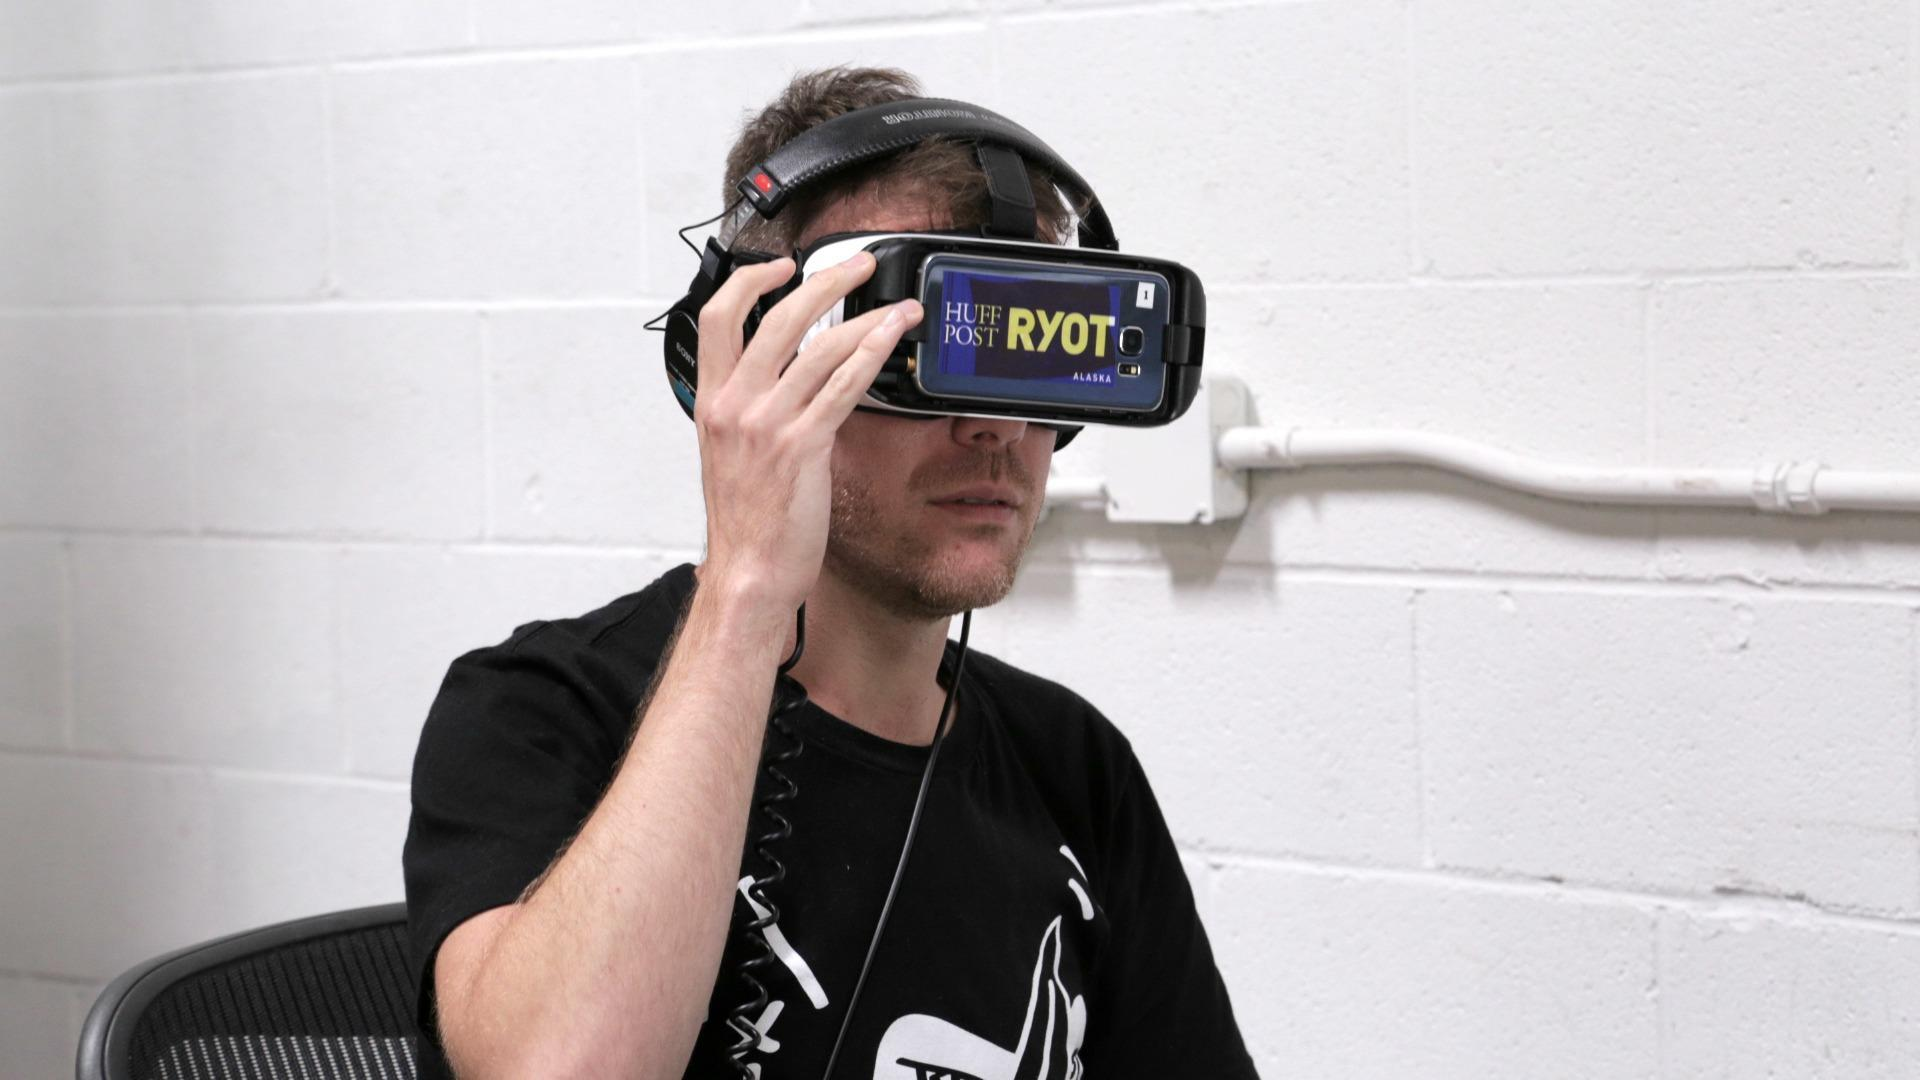 Ryot's focus on breaking VR news